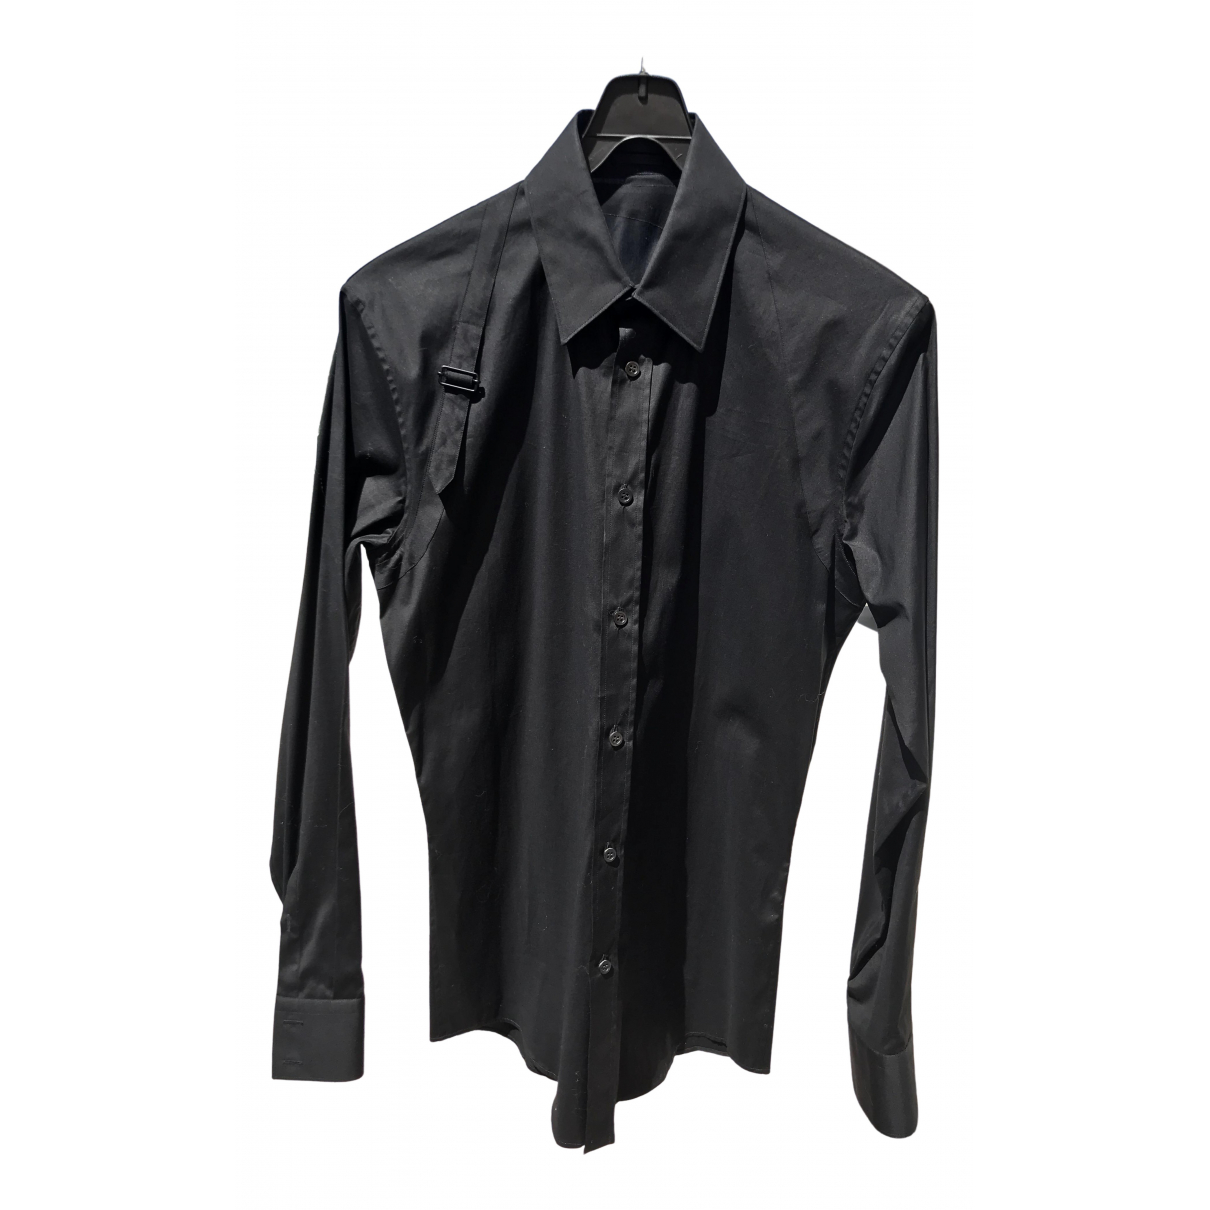 Alexander Mcqueen \N Black Cotton Shirts for Men 14.5 UK - US (tour de cou / collar)